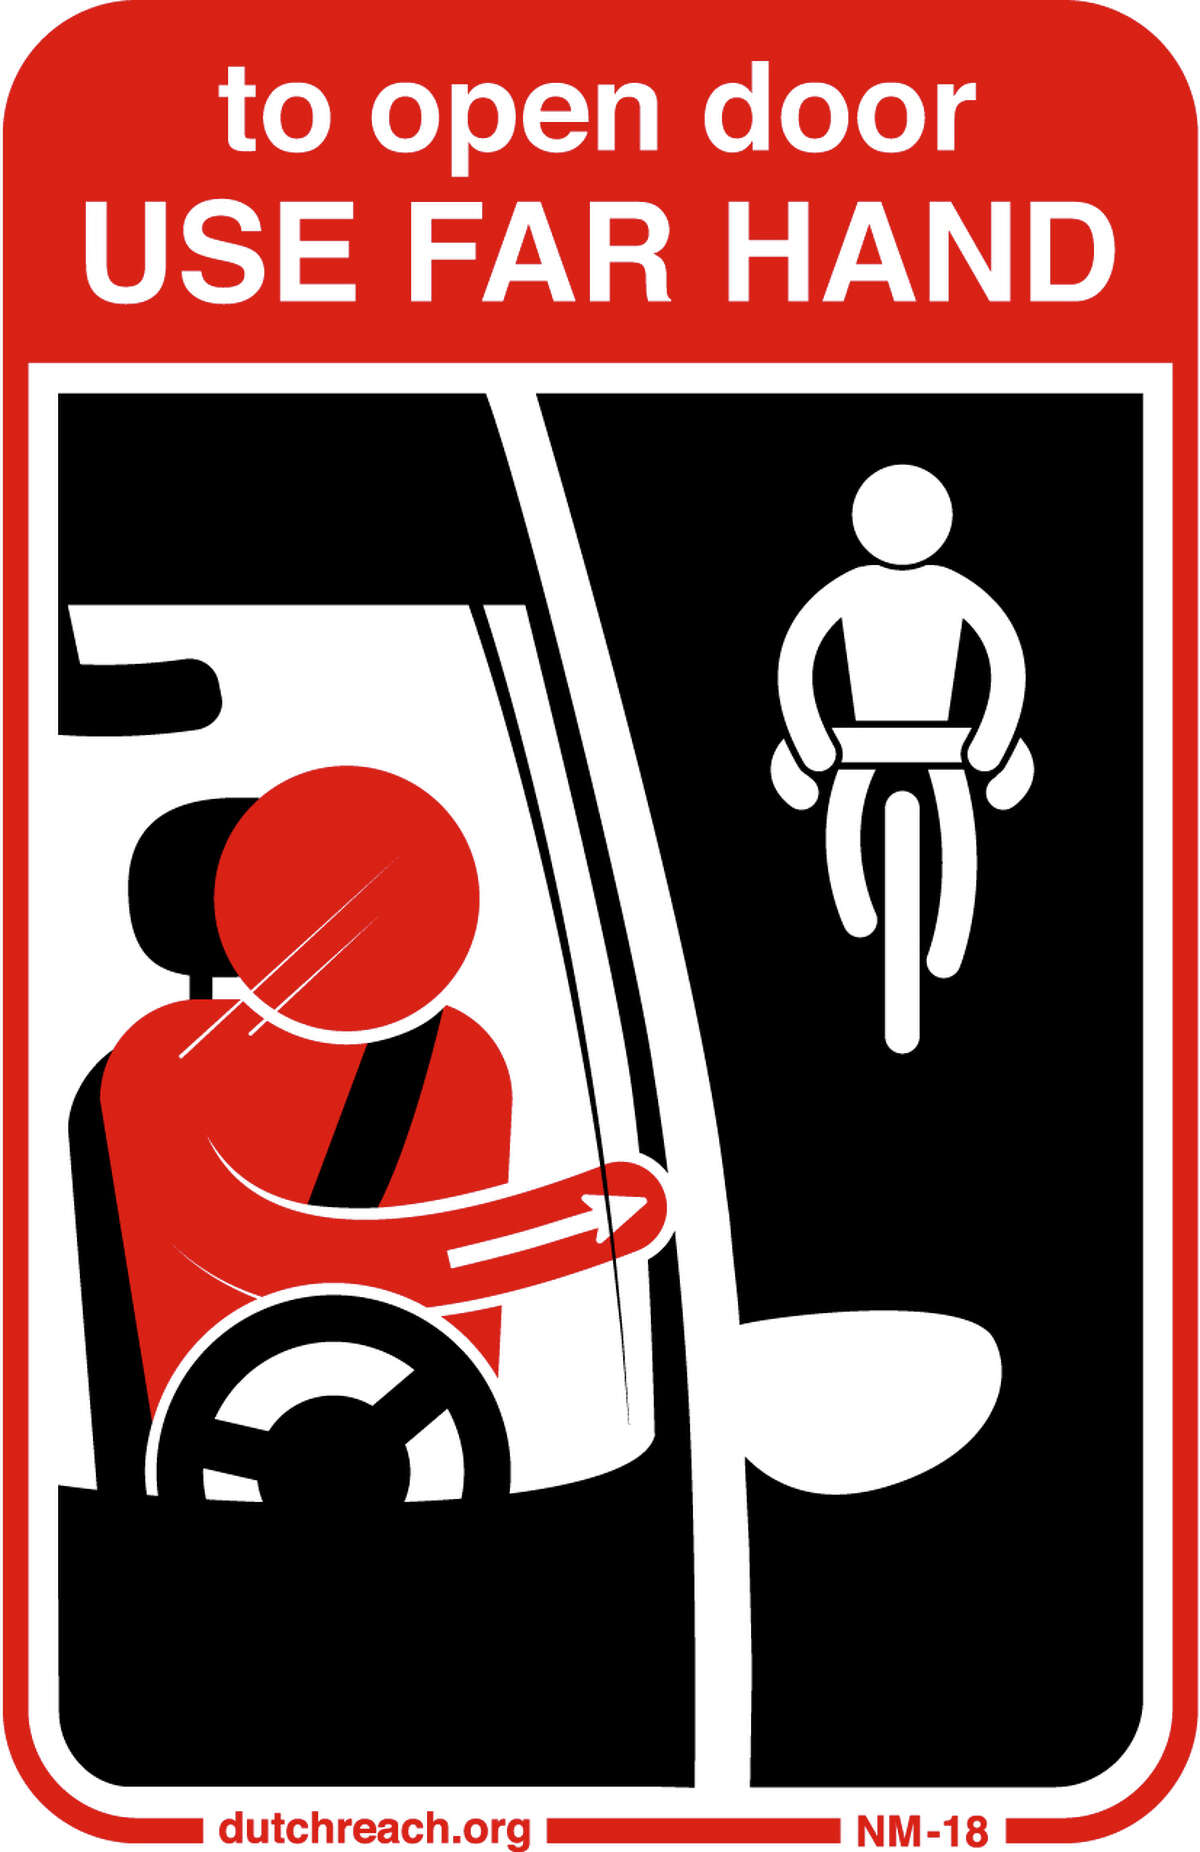 This illustration shows the Dutch Reach method where the driver uses the hand furthest from the car door for opening.